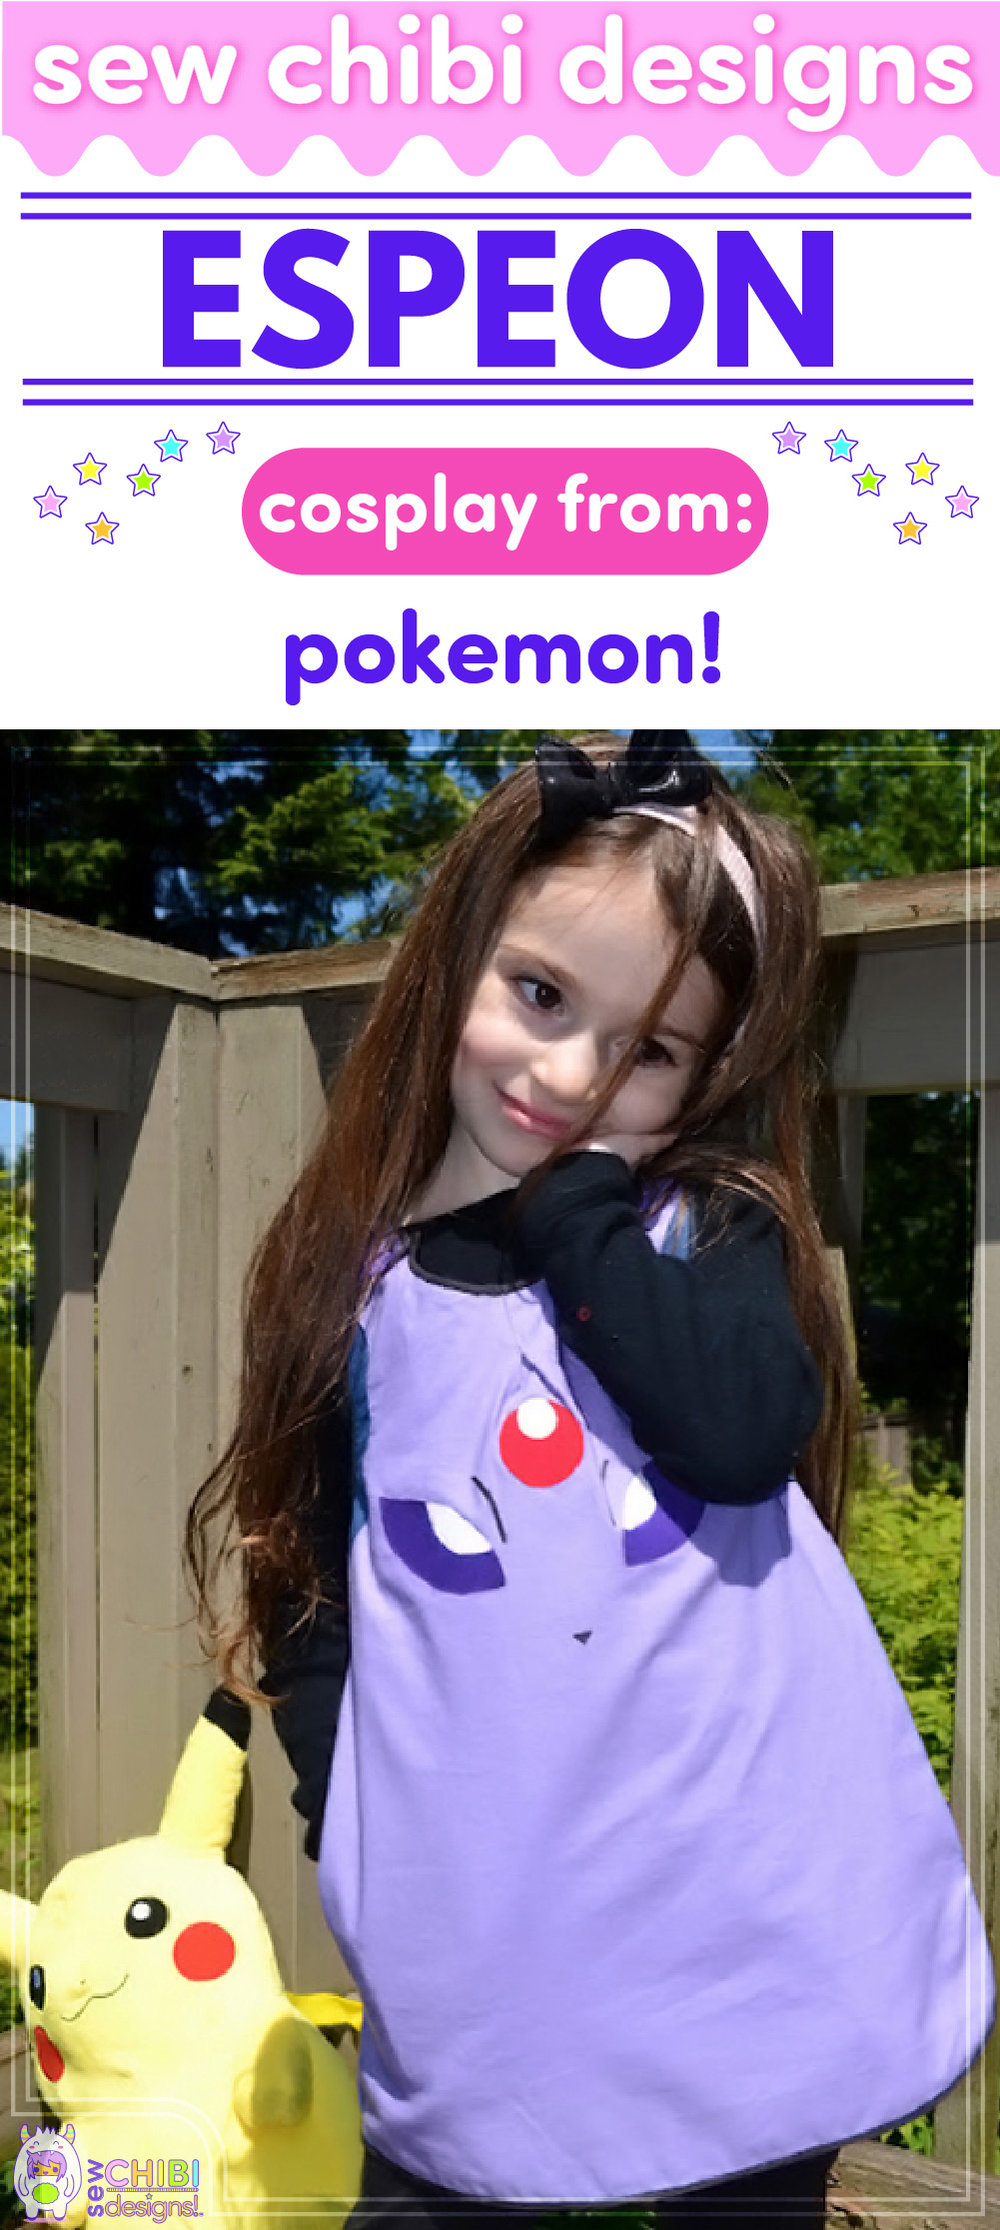 Espeon chibi cosplay from Pokemon sewn by Sew Chibi Designs for Sew Geeky